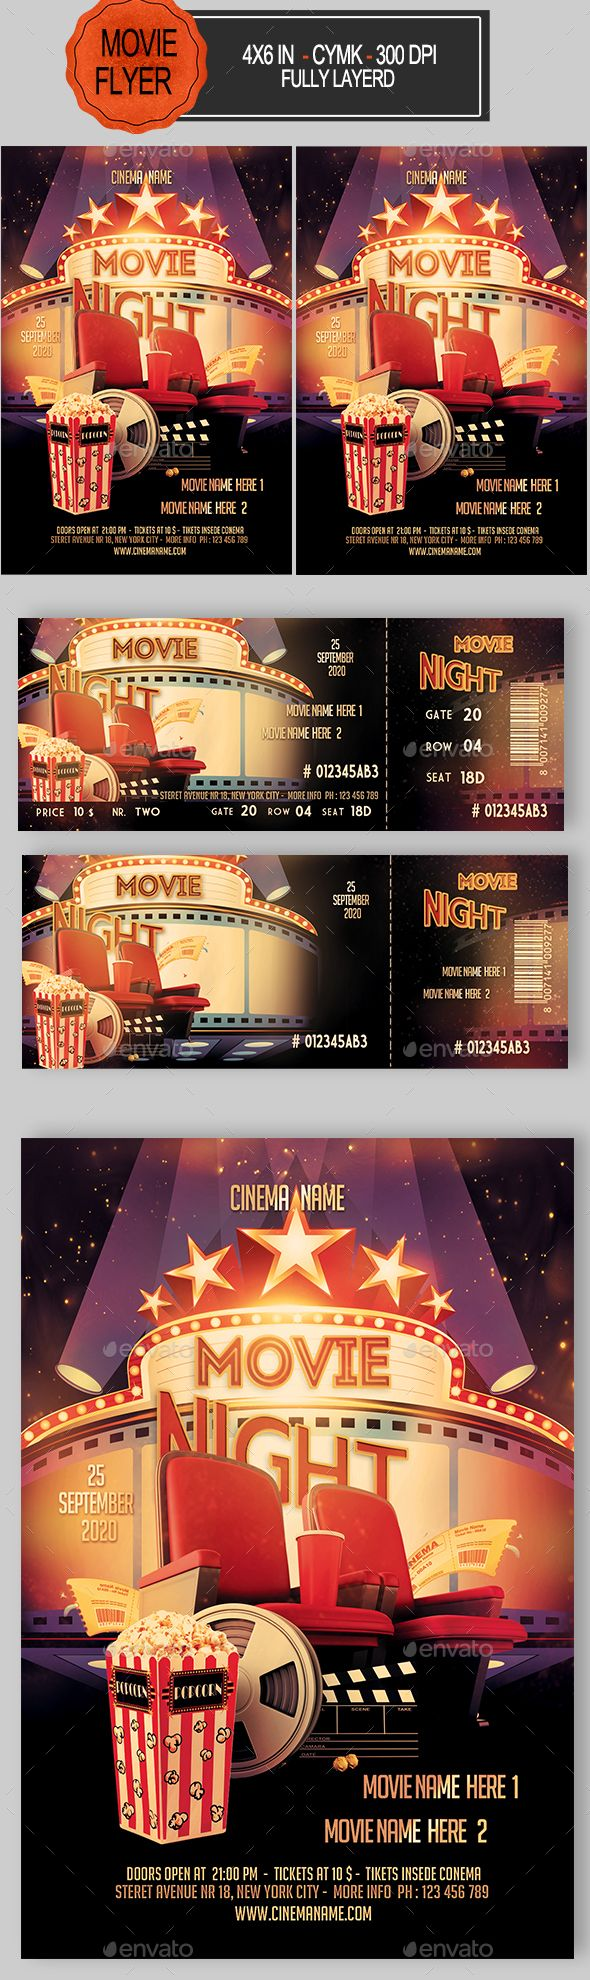 Movie Night Flyer+Ticket — Photoshop PSD #director #night • Available here → https://graphicriver.net/item/movie-night-flyerticket/17340472?ref=pxcr